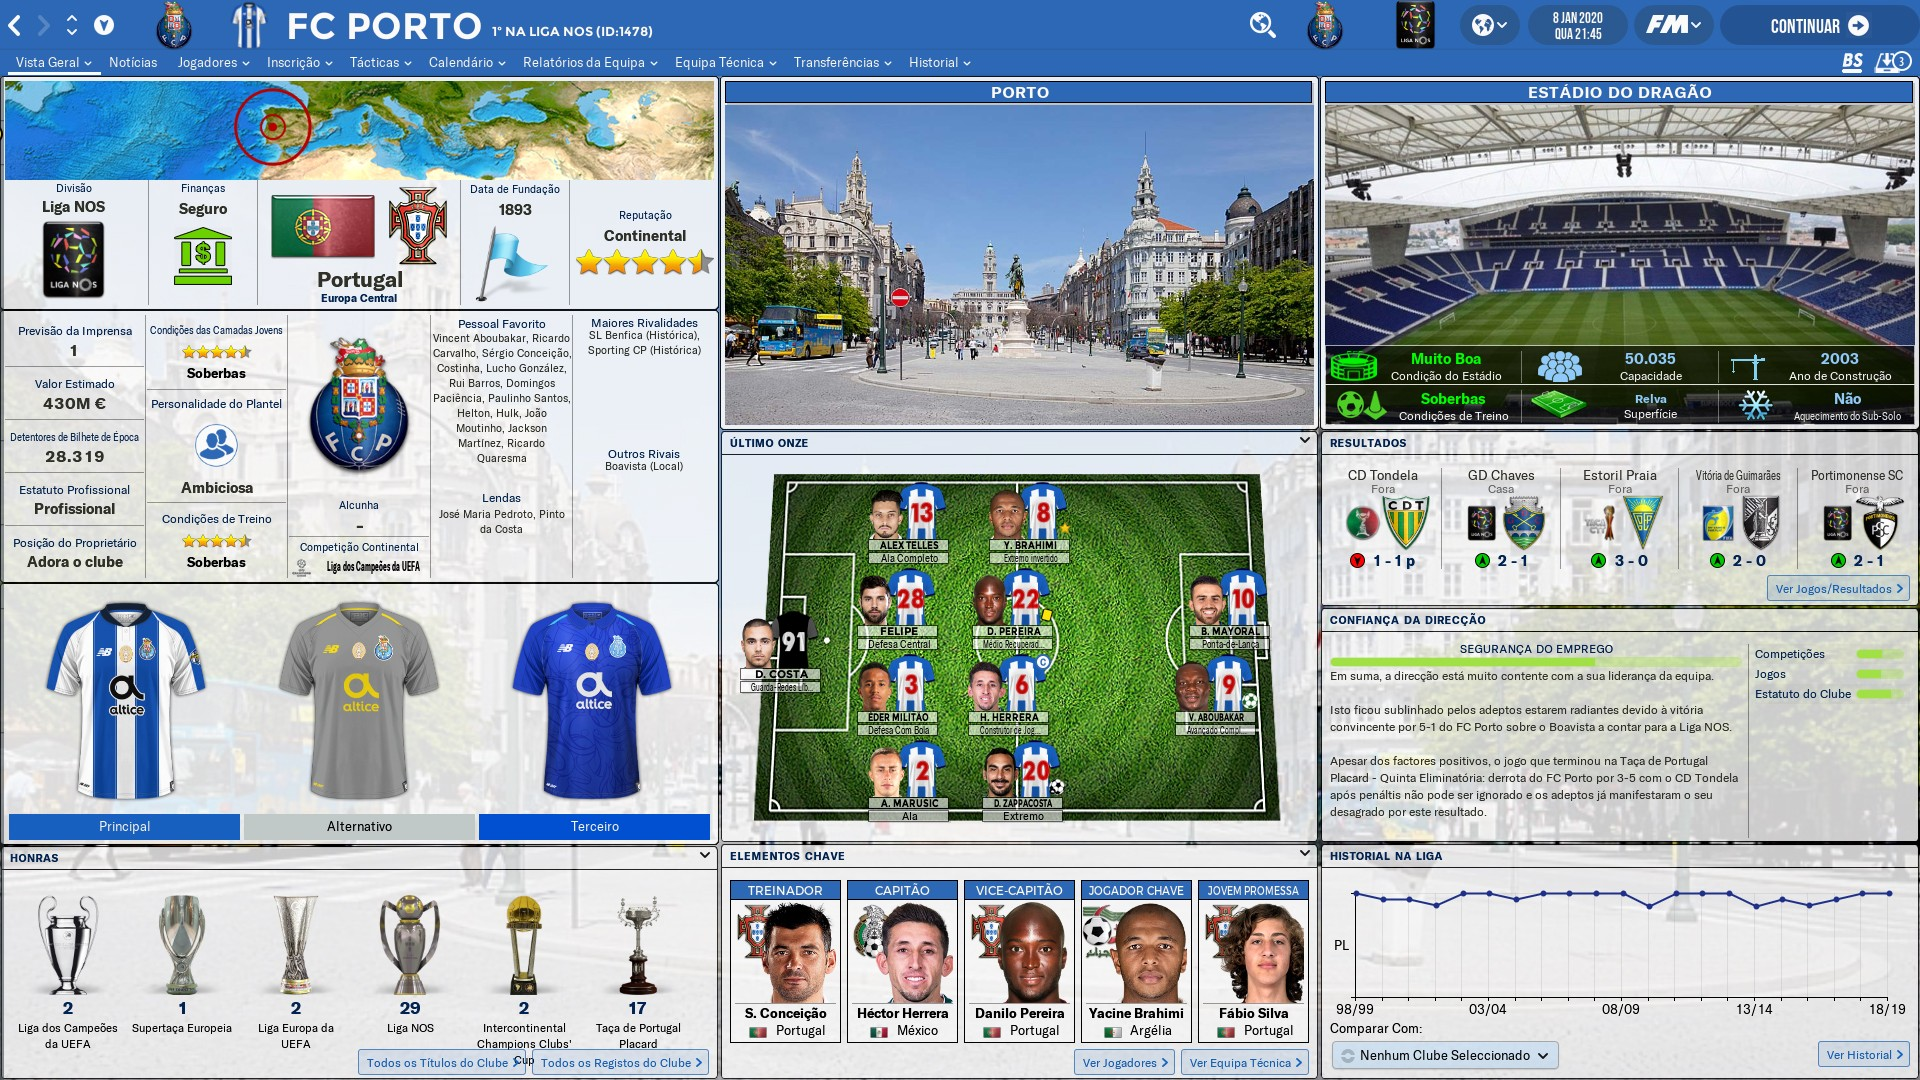 Football Manager 2019 Skins - FM 2019 FLUT skin light - Version 1.8